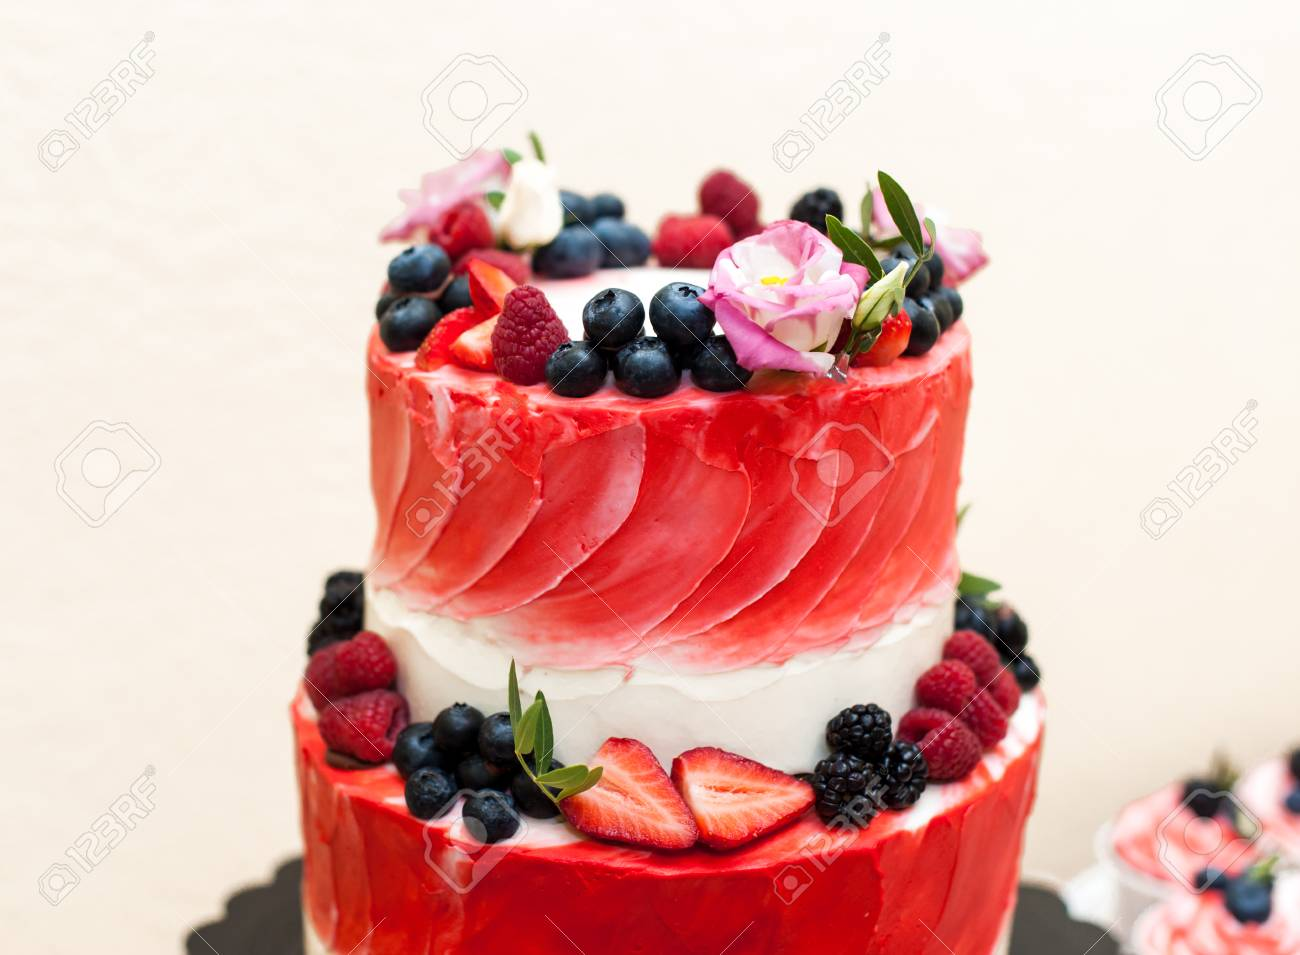 Large Strawberry Cake Stock Photo Picture And Royalty Free Image Image 82990271